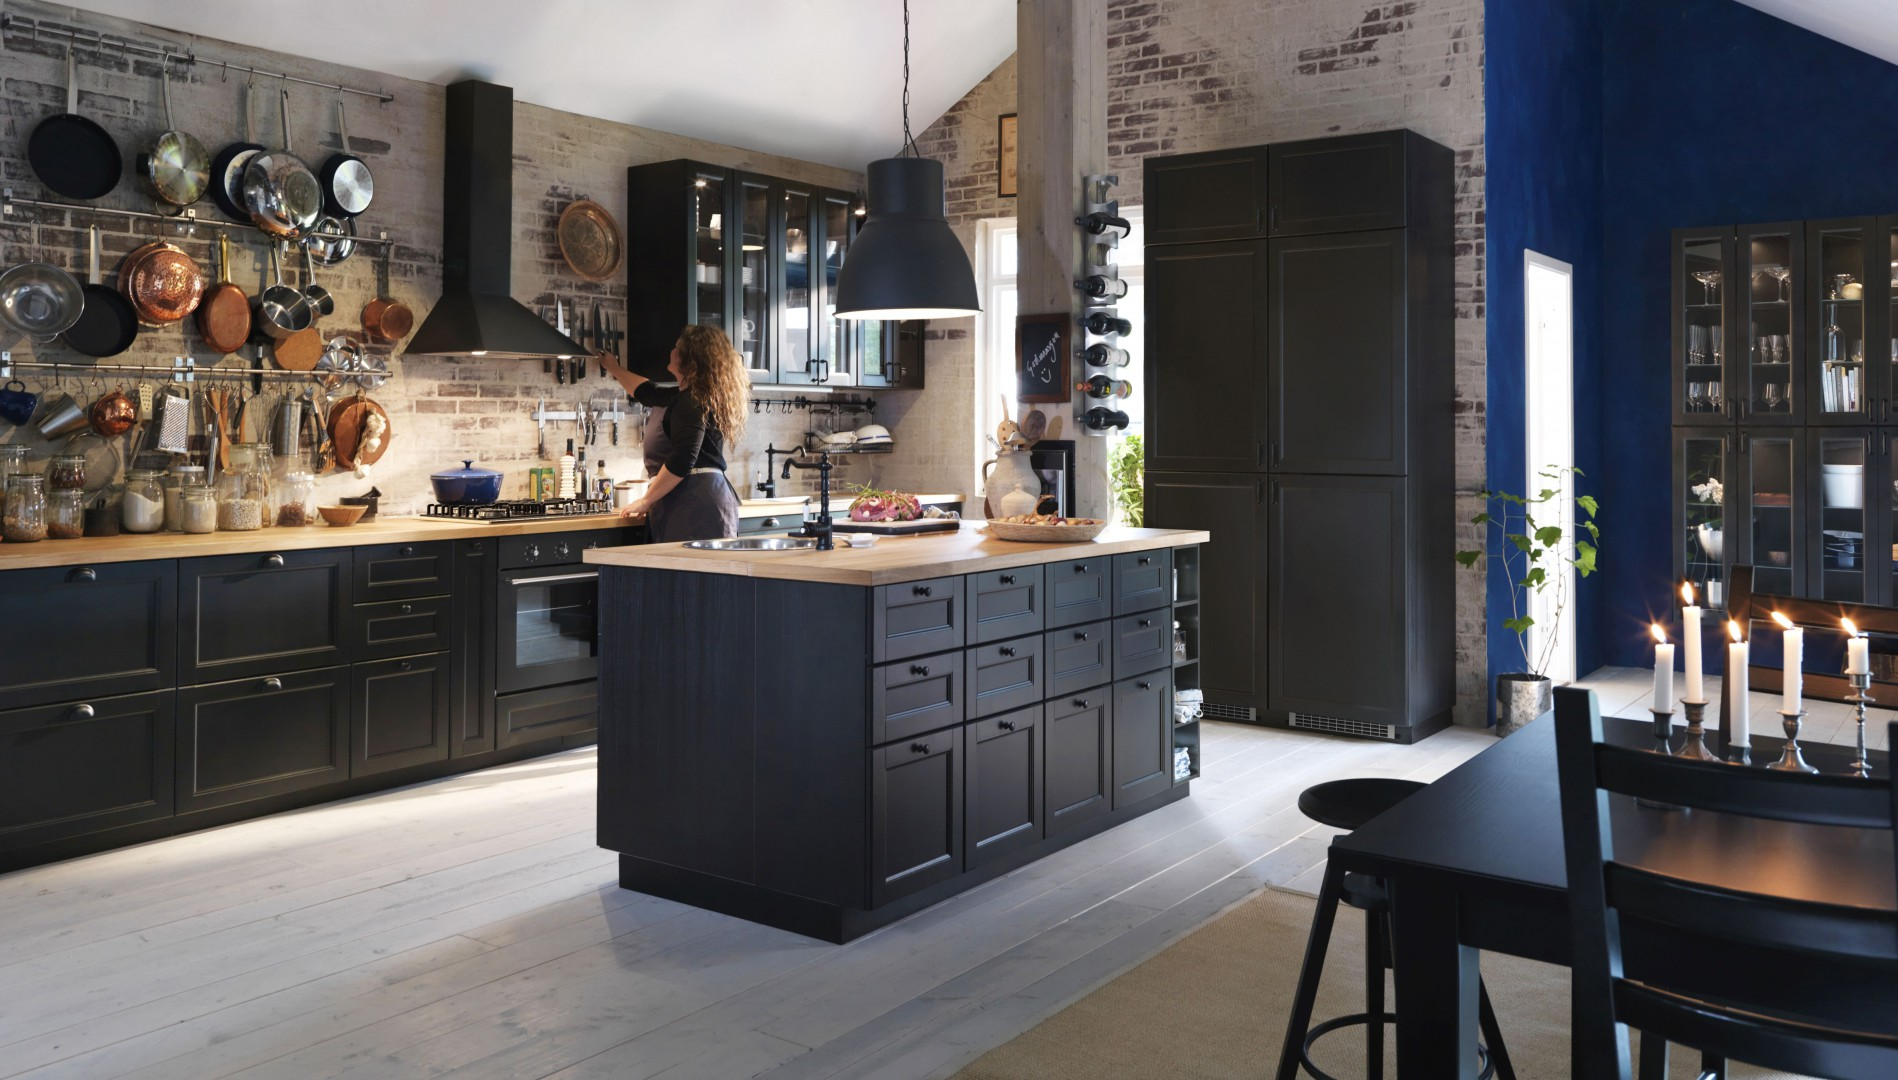 Emble Ikea Kitchen Cabinets Kitchen Appliances Tips And Review